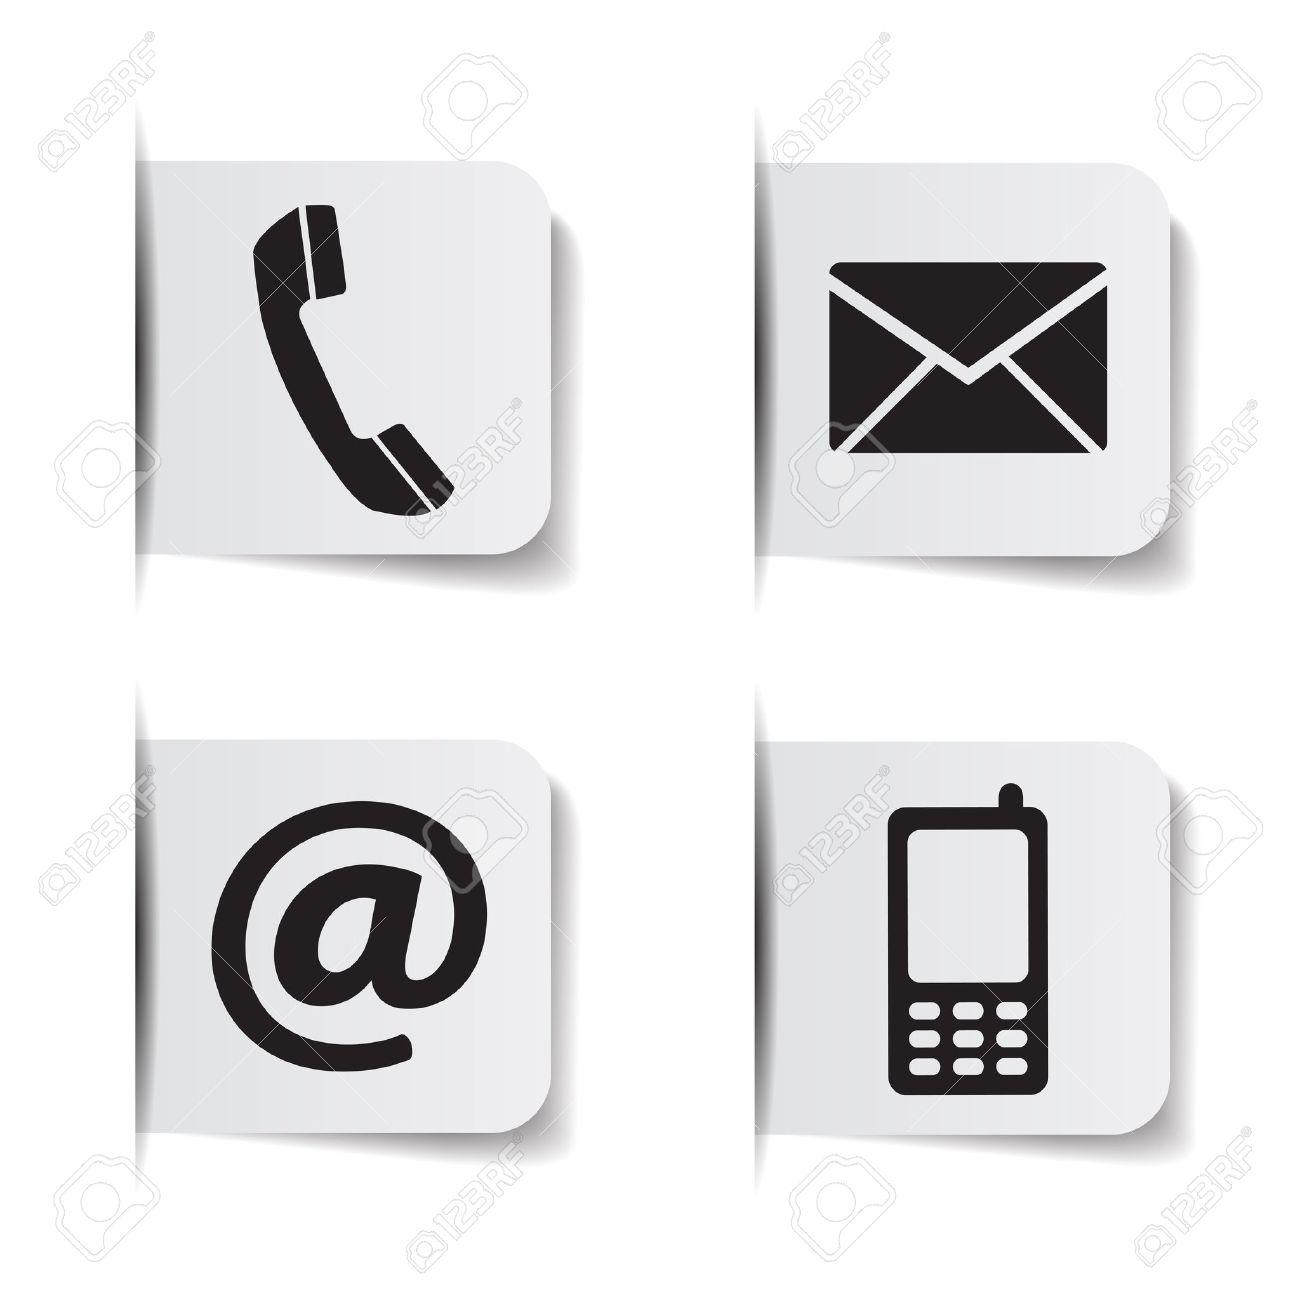 Web contact us black icons with telephone, email, mobile phone and at symbol on paper labels with shadow effects EPS 10 vector illustration isolated on white background. - 39596275